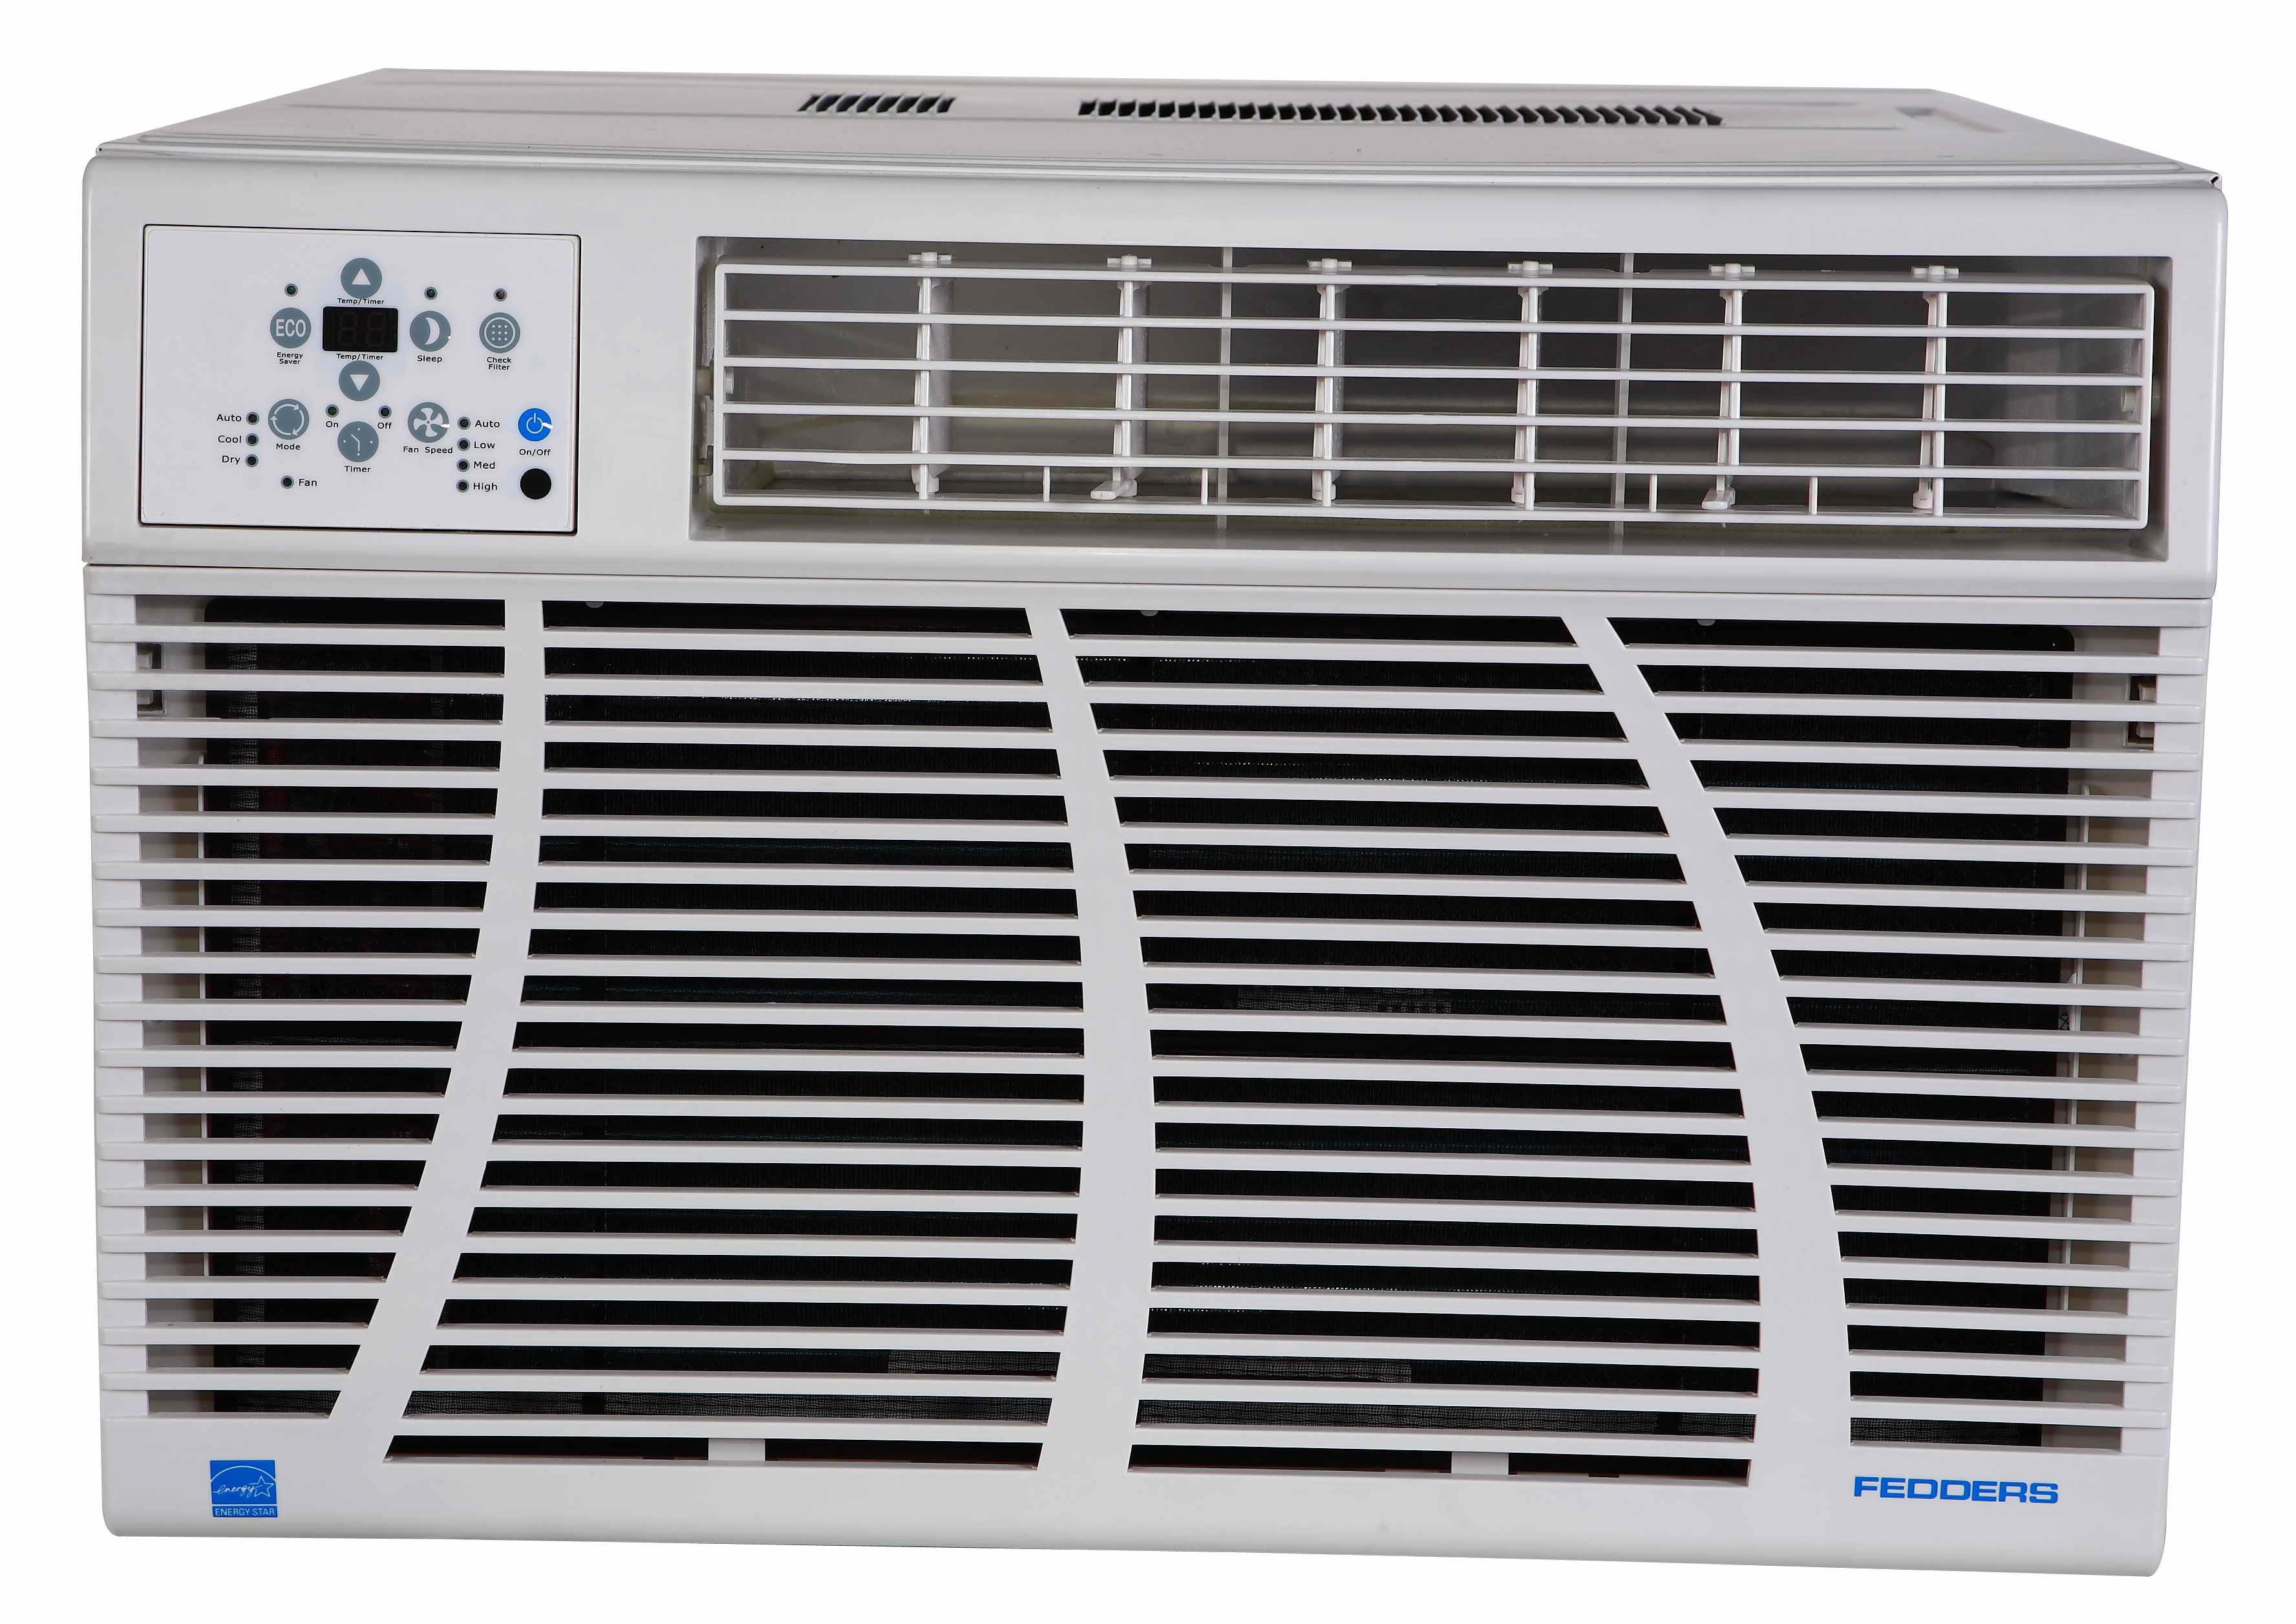 Fedders Window Air Conditioner Models | Sante Blog on